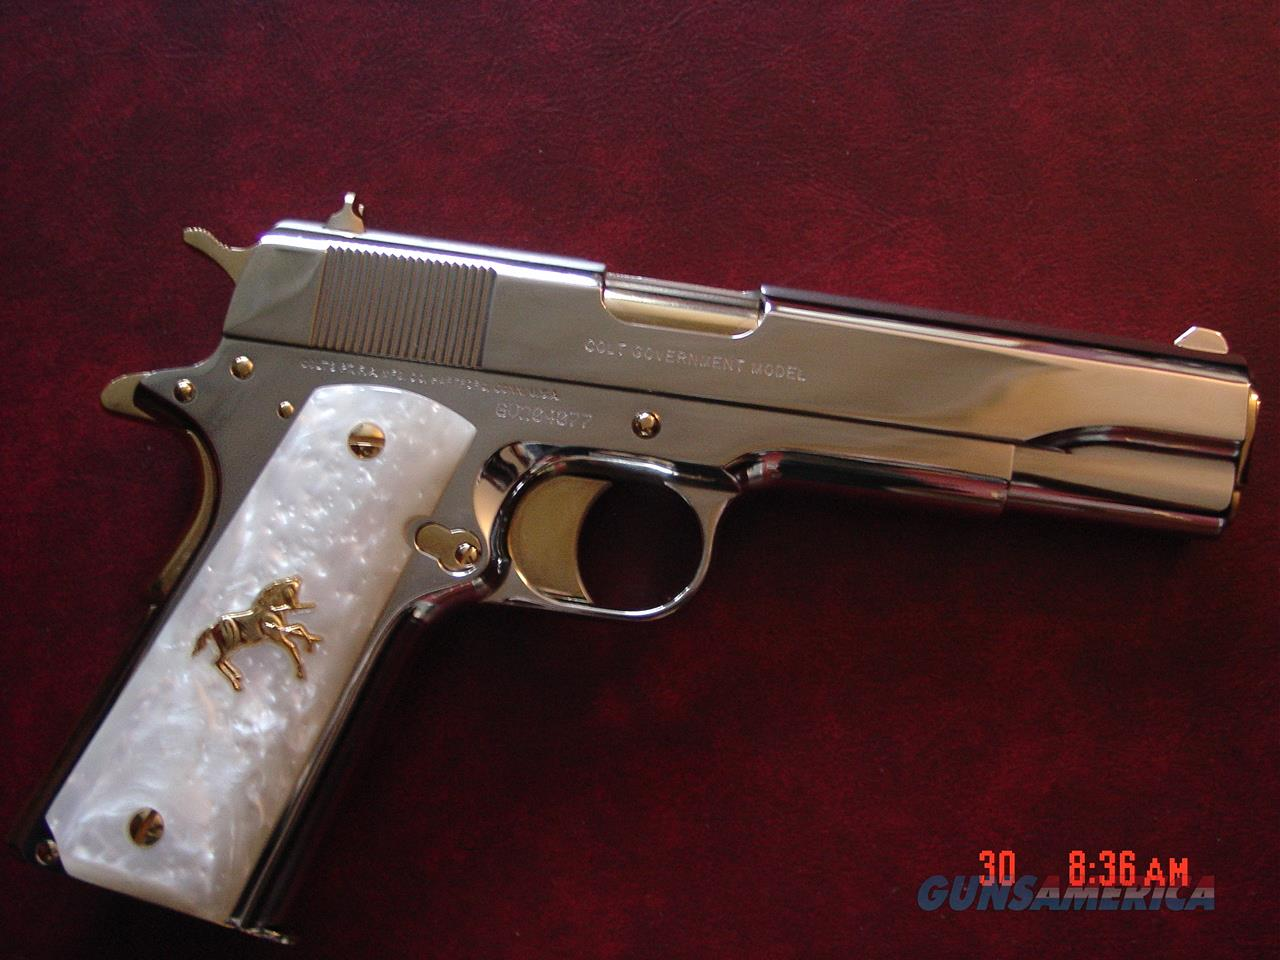 Colt Government 45, full refinished in bright mirror nickel with 24K gold accents,2 mags,pearlite grips,never fired,box,manual etc.an awesome showpiece !!  Guns > Pistols > Colt Automatic Pistols (1911 & Var)